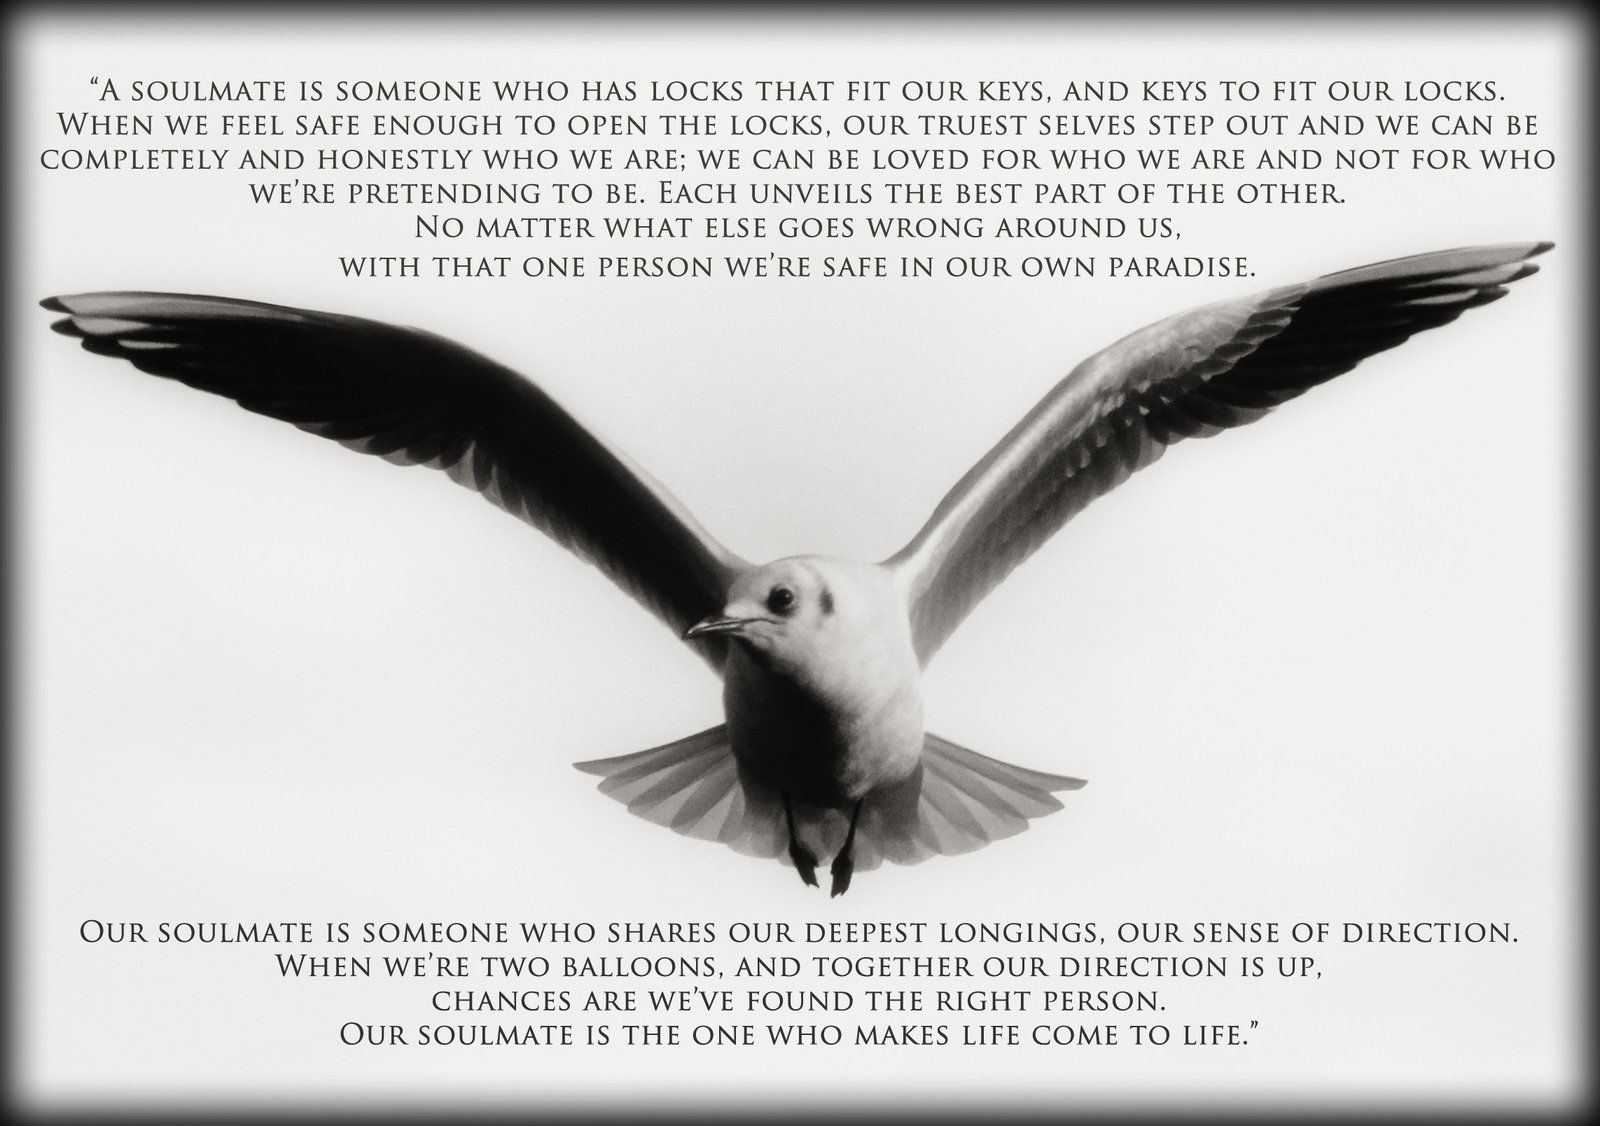 Seagull Inspirational Wallpaper digital images by ccdeleo